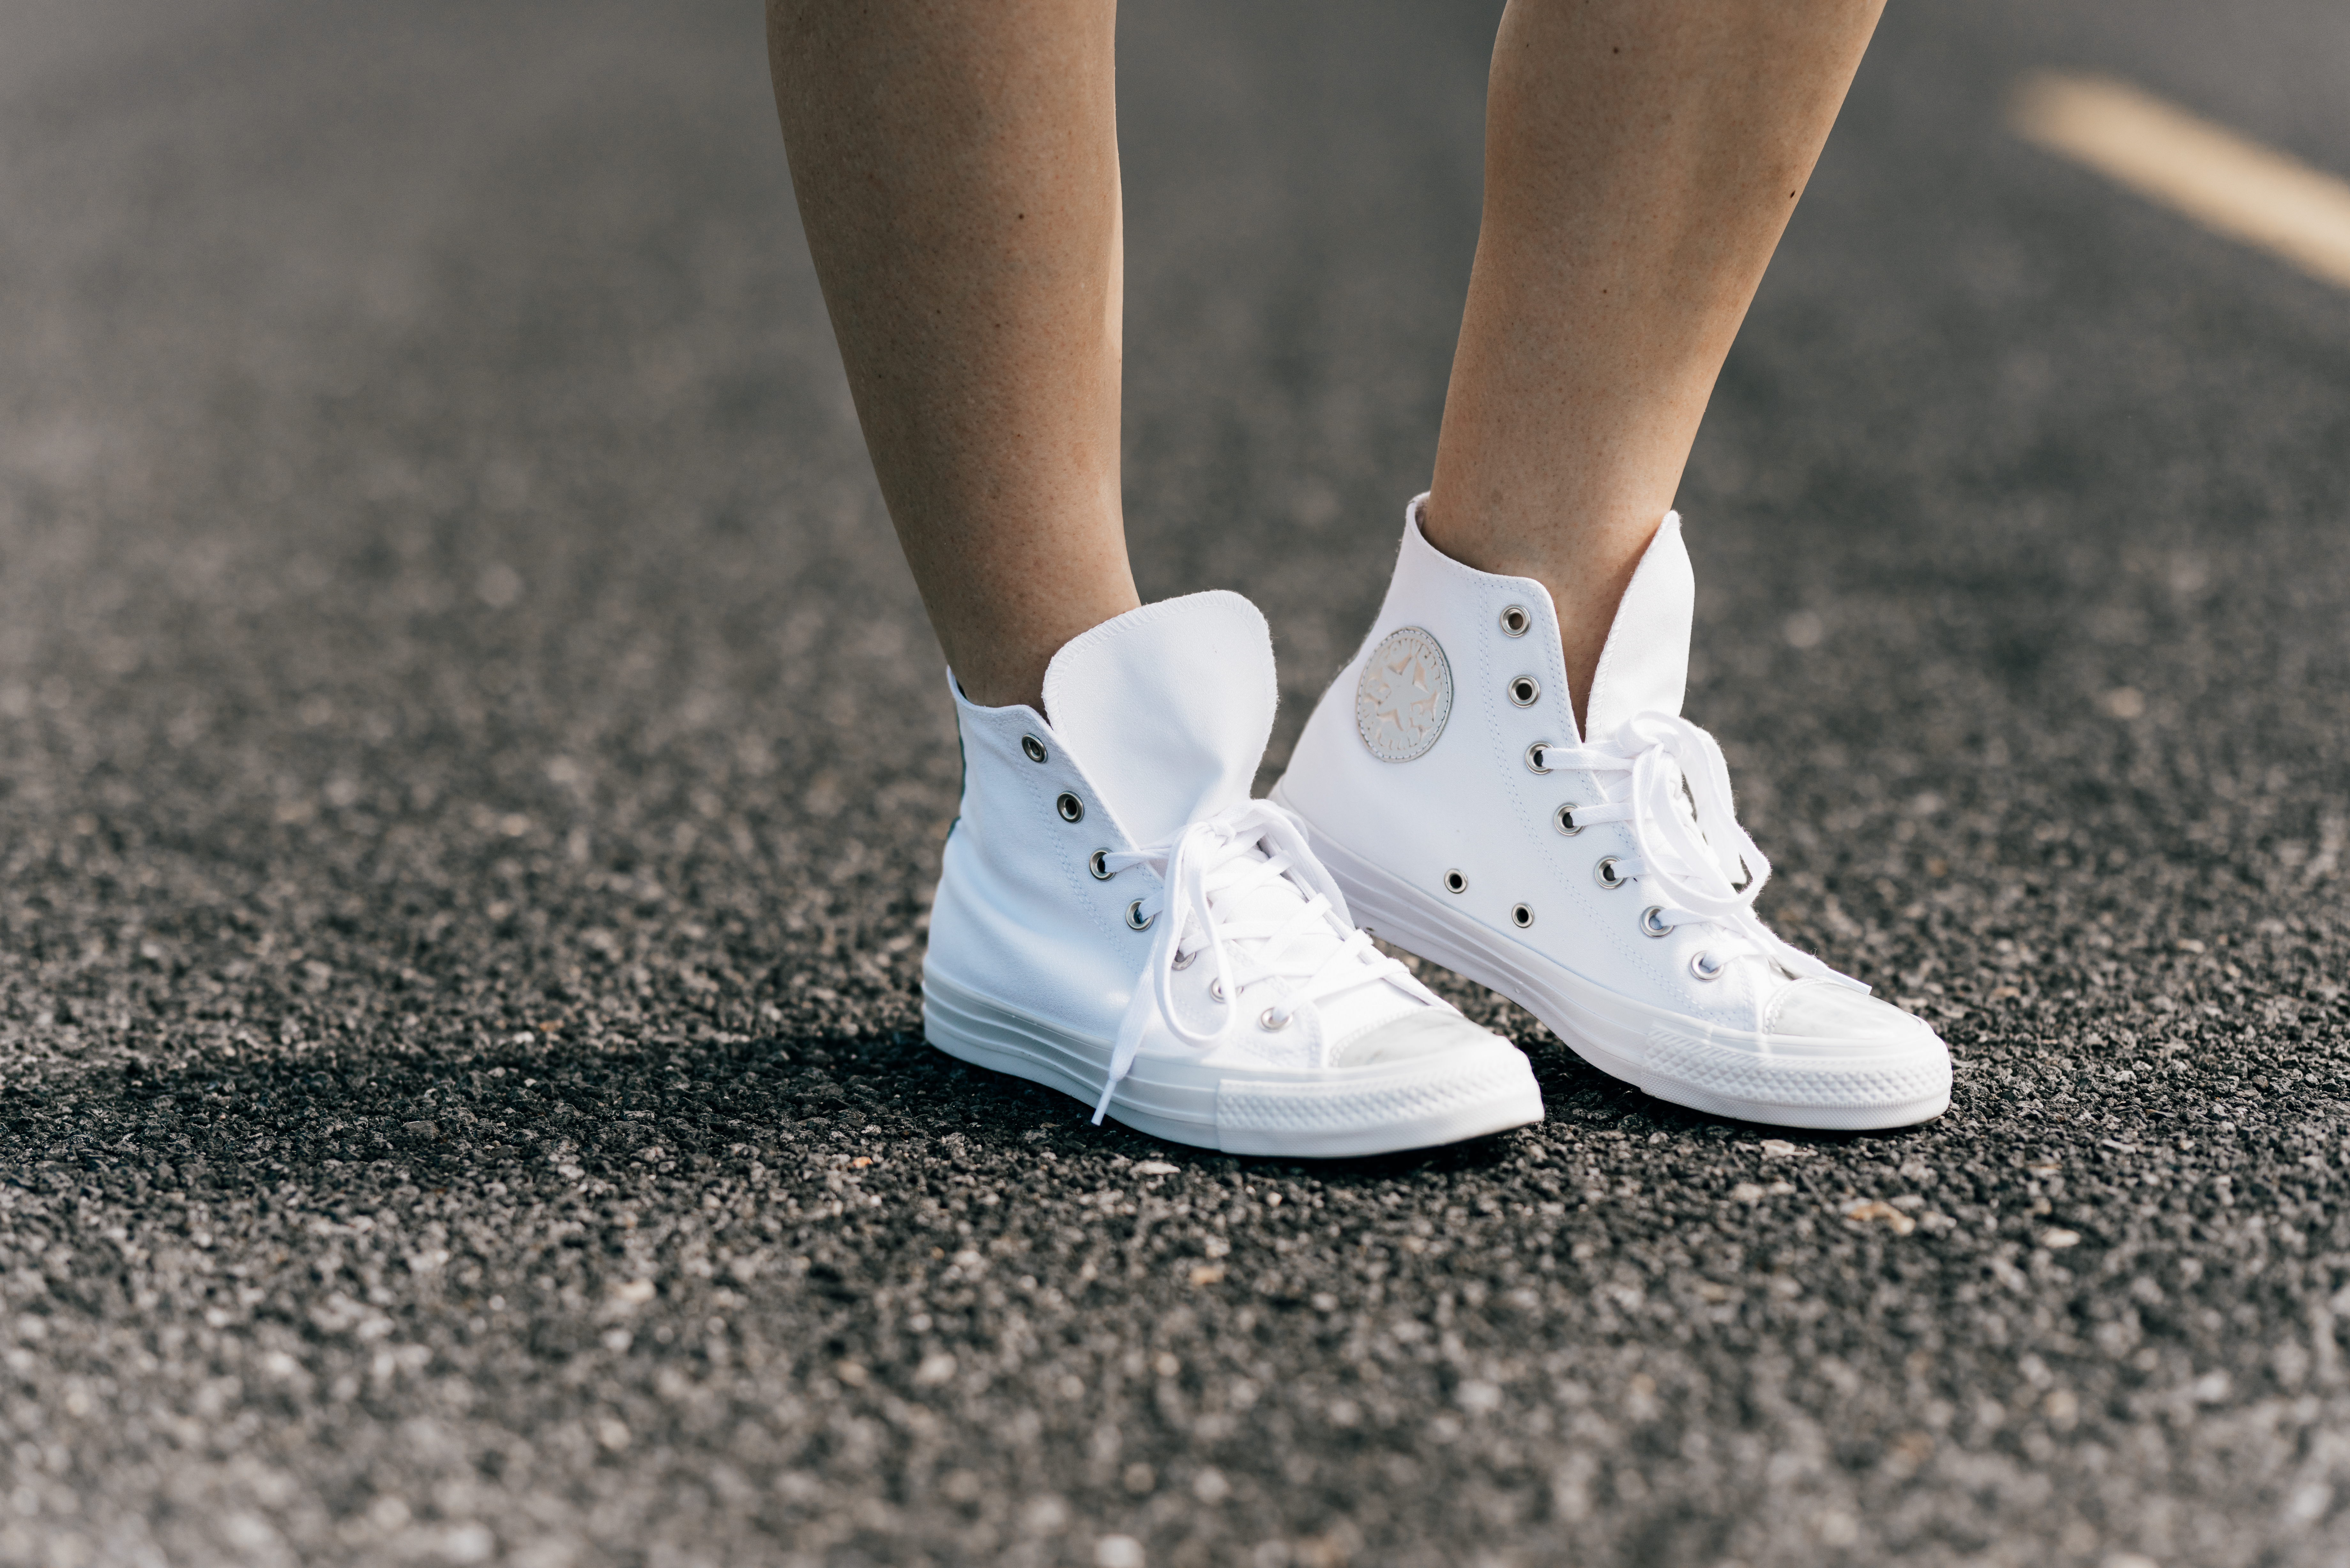 converse sneakers // www.thefabblog.com